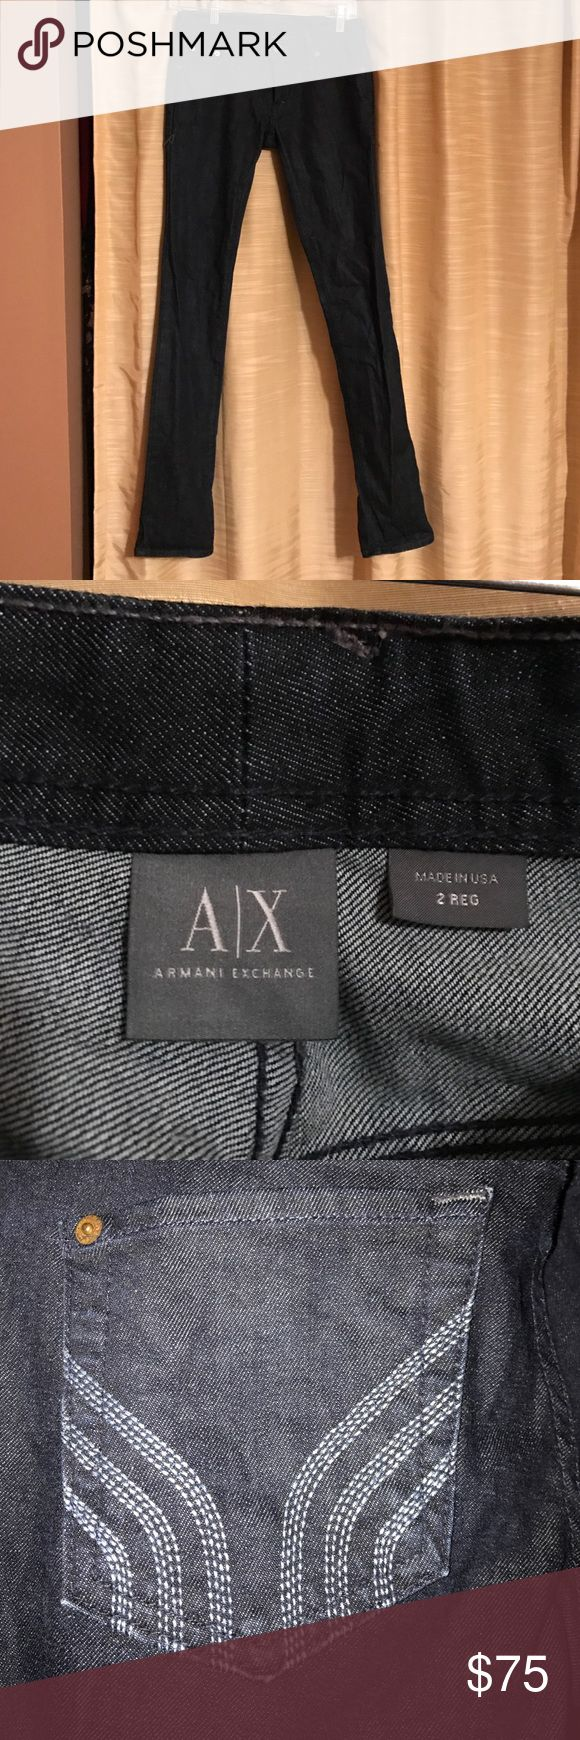 Armani Exchange jeans Armani Exchange jeans.  Dark wash. Boot cut. Only worn once! A/X Armani Exchange Jeans Boot Cut